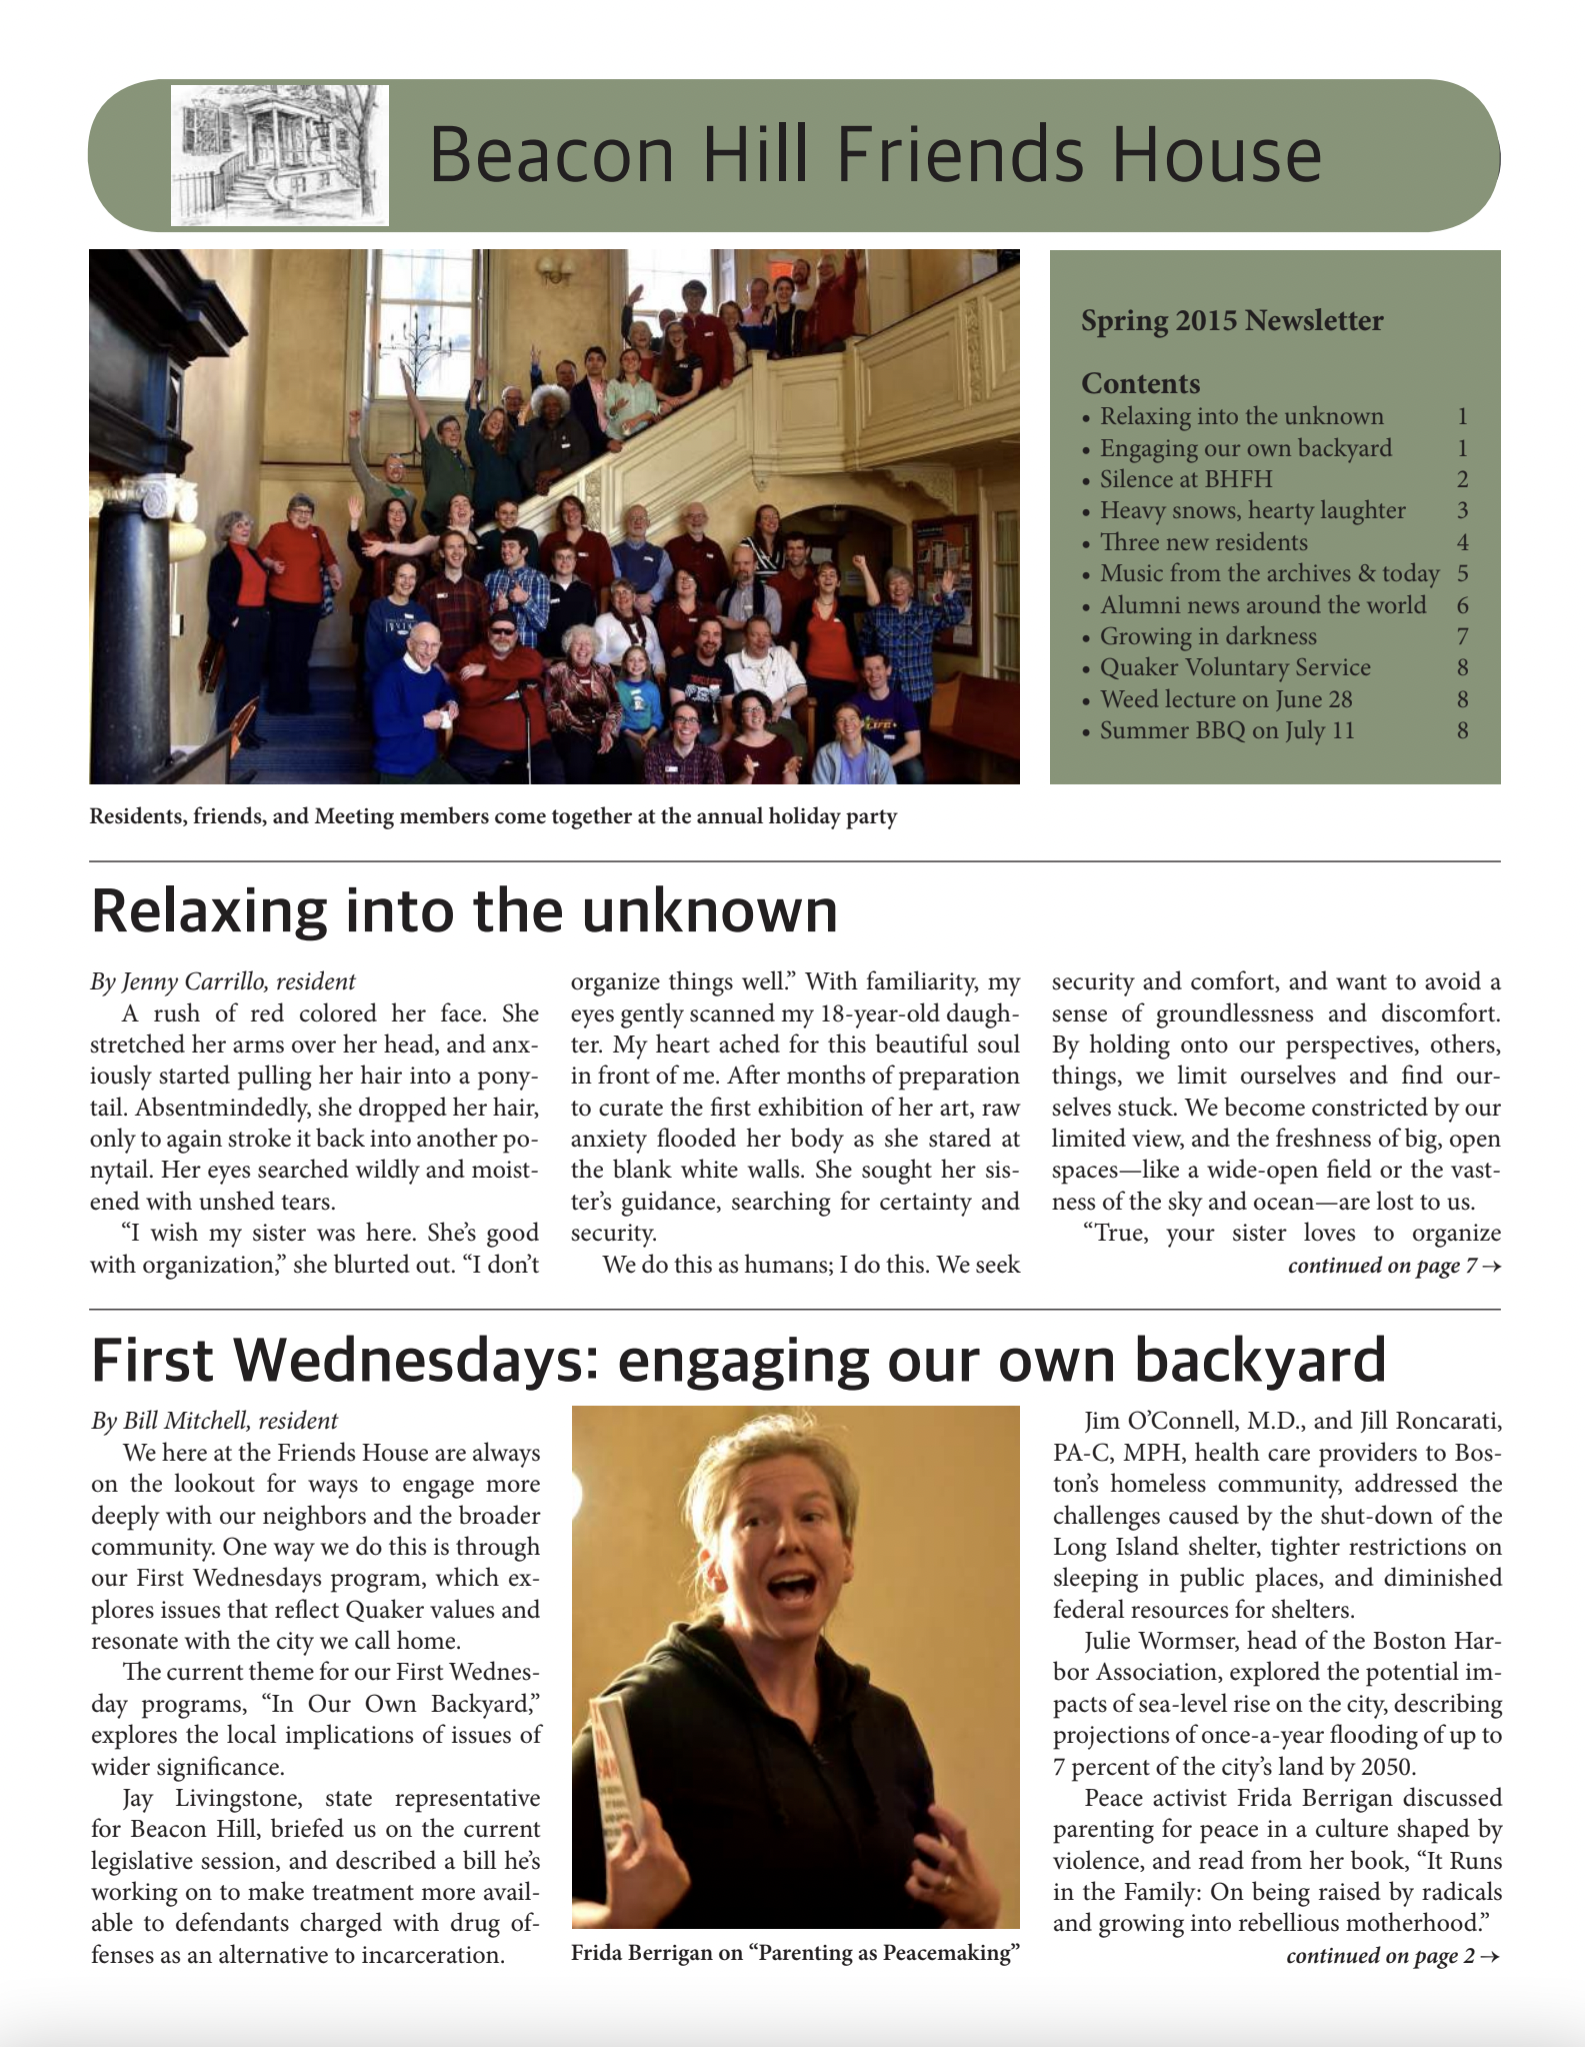 First page of spring/summer 2015 newsletter